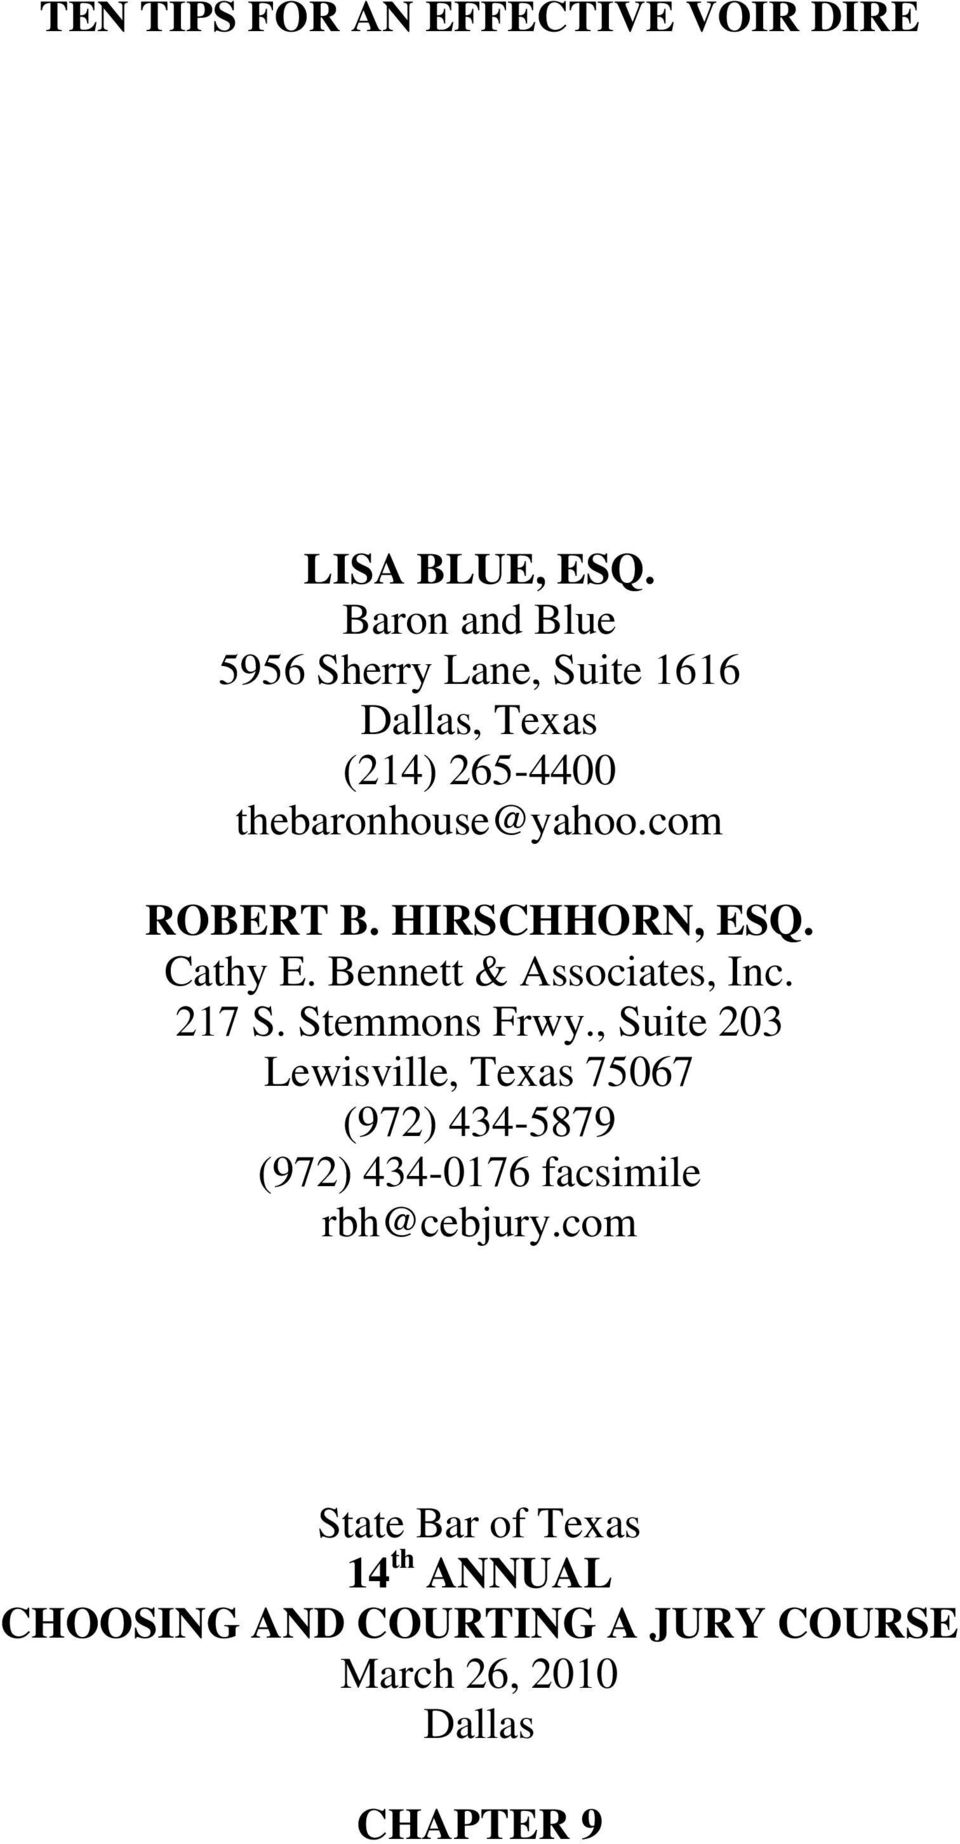 HIRSCHHORN, ESQ. Cathy E. Bennett & Associates, Inc. 217 S. Stemmons Frwy.